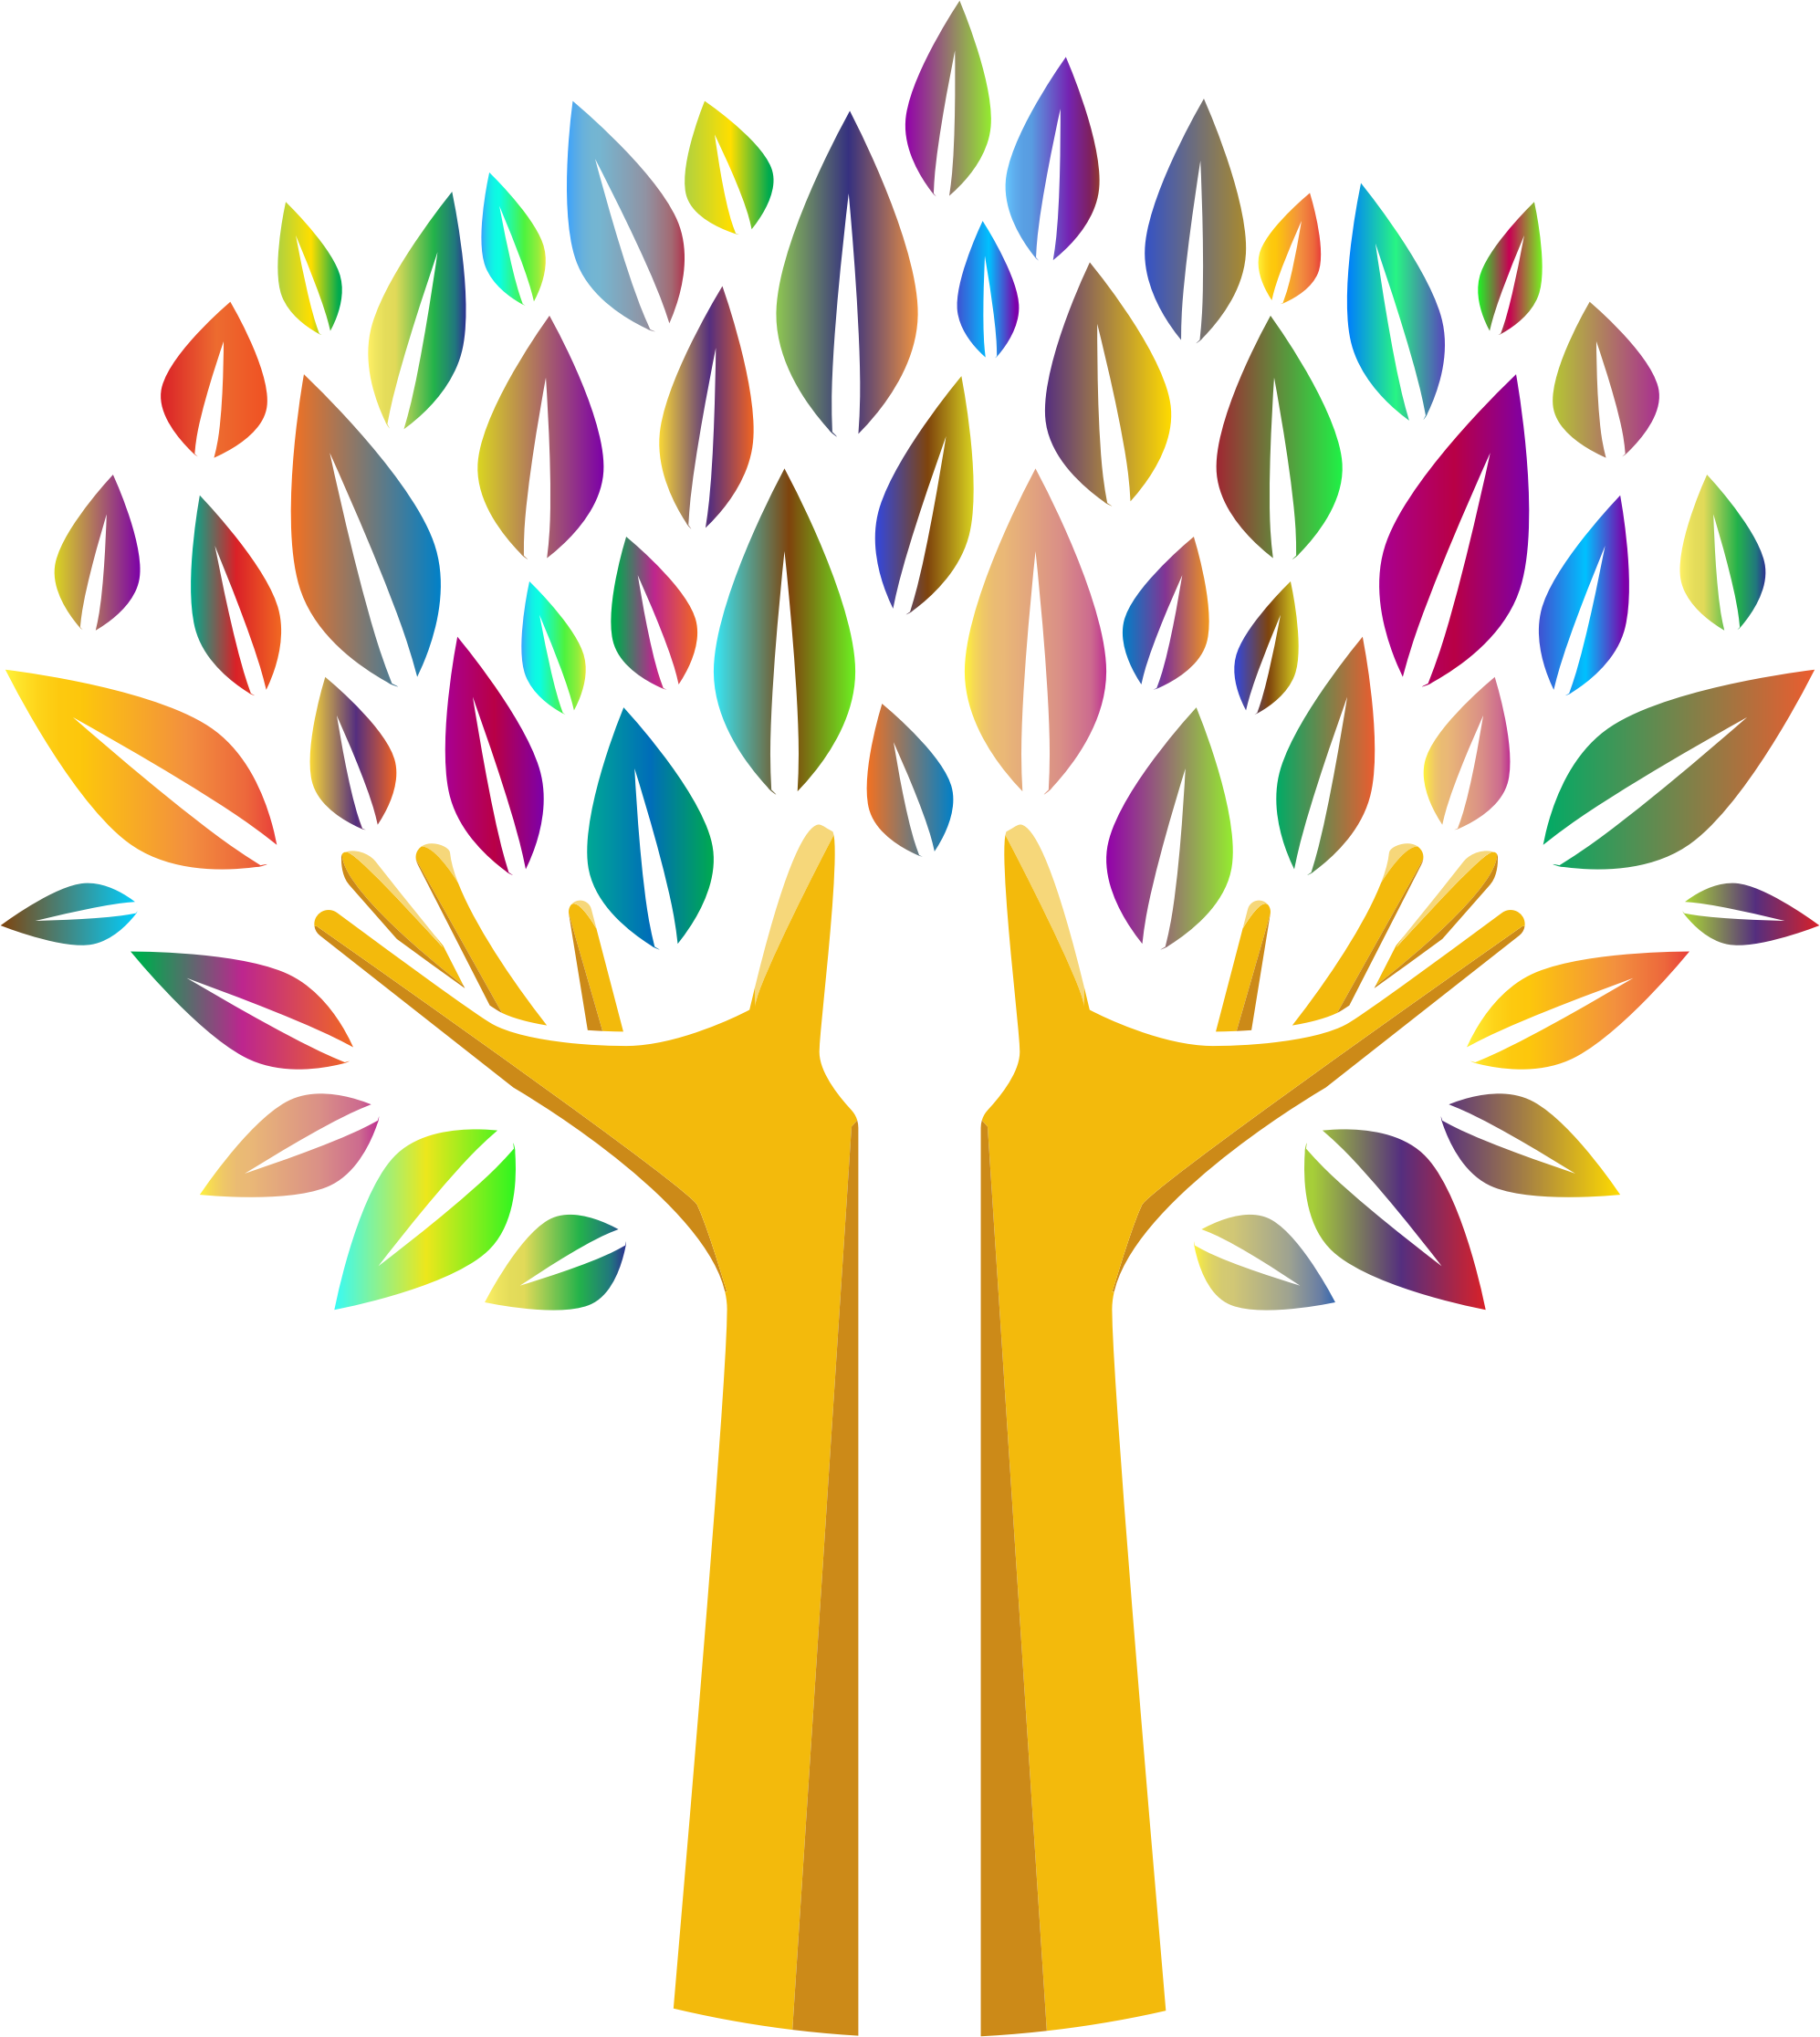 Hand clipart tree. Prismatic hands no background